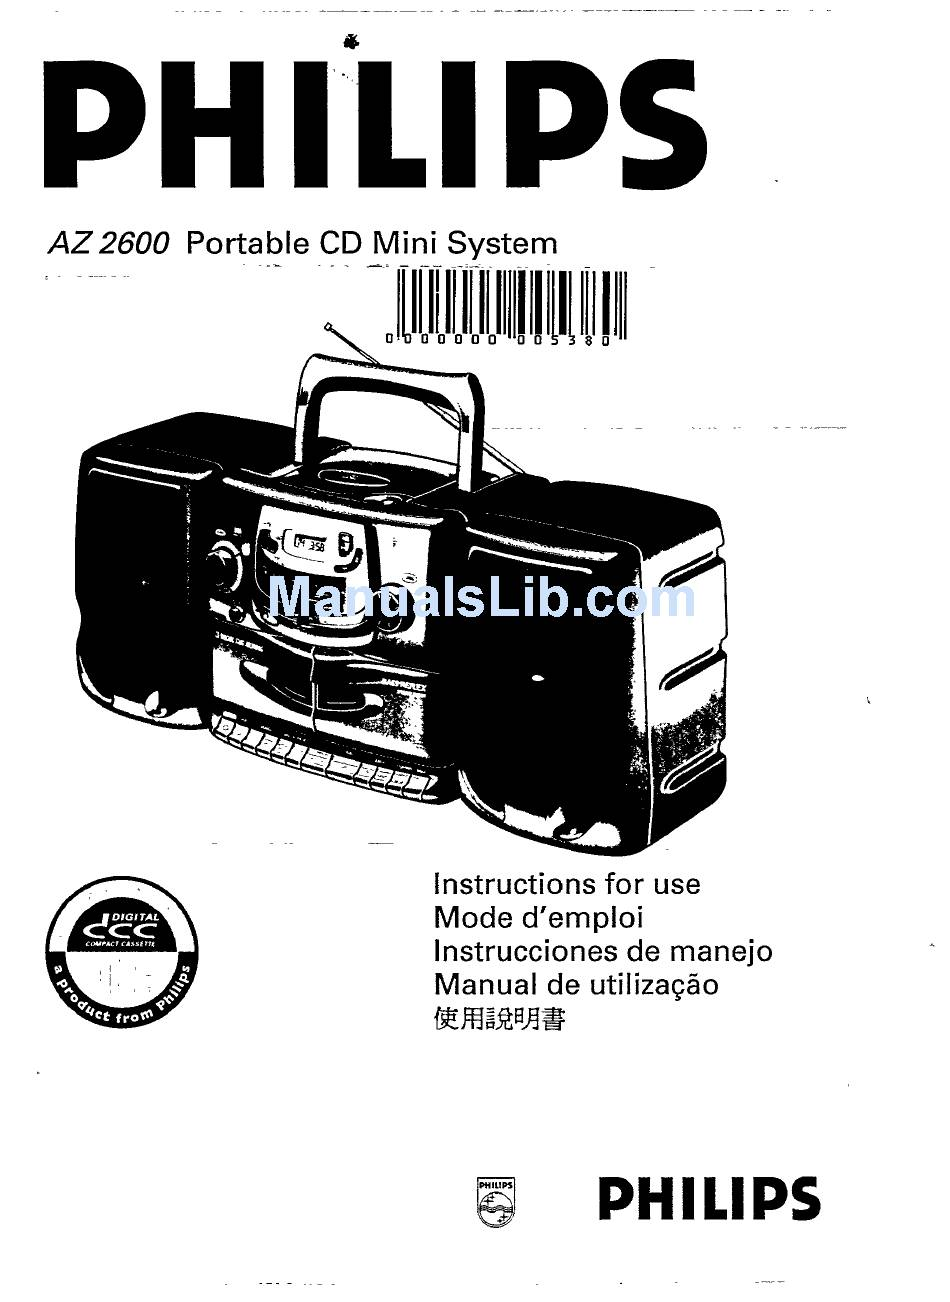 PHILIPS AZ 2600 INSTRUCTIONS FOR USE MANUAL Pdf Download